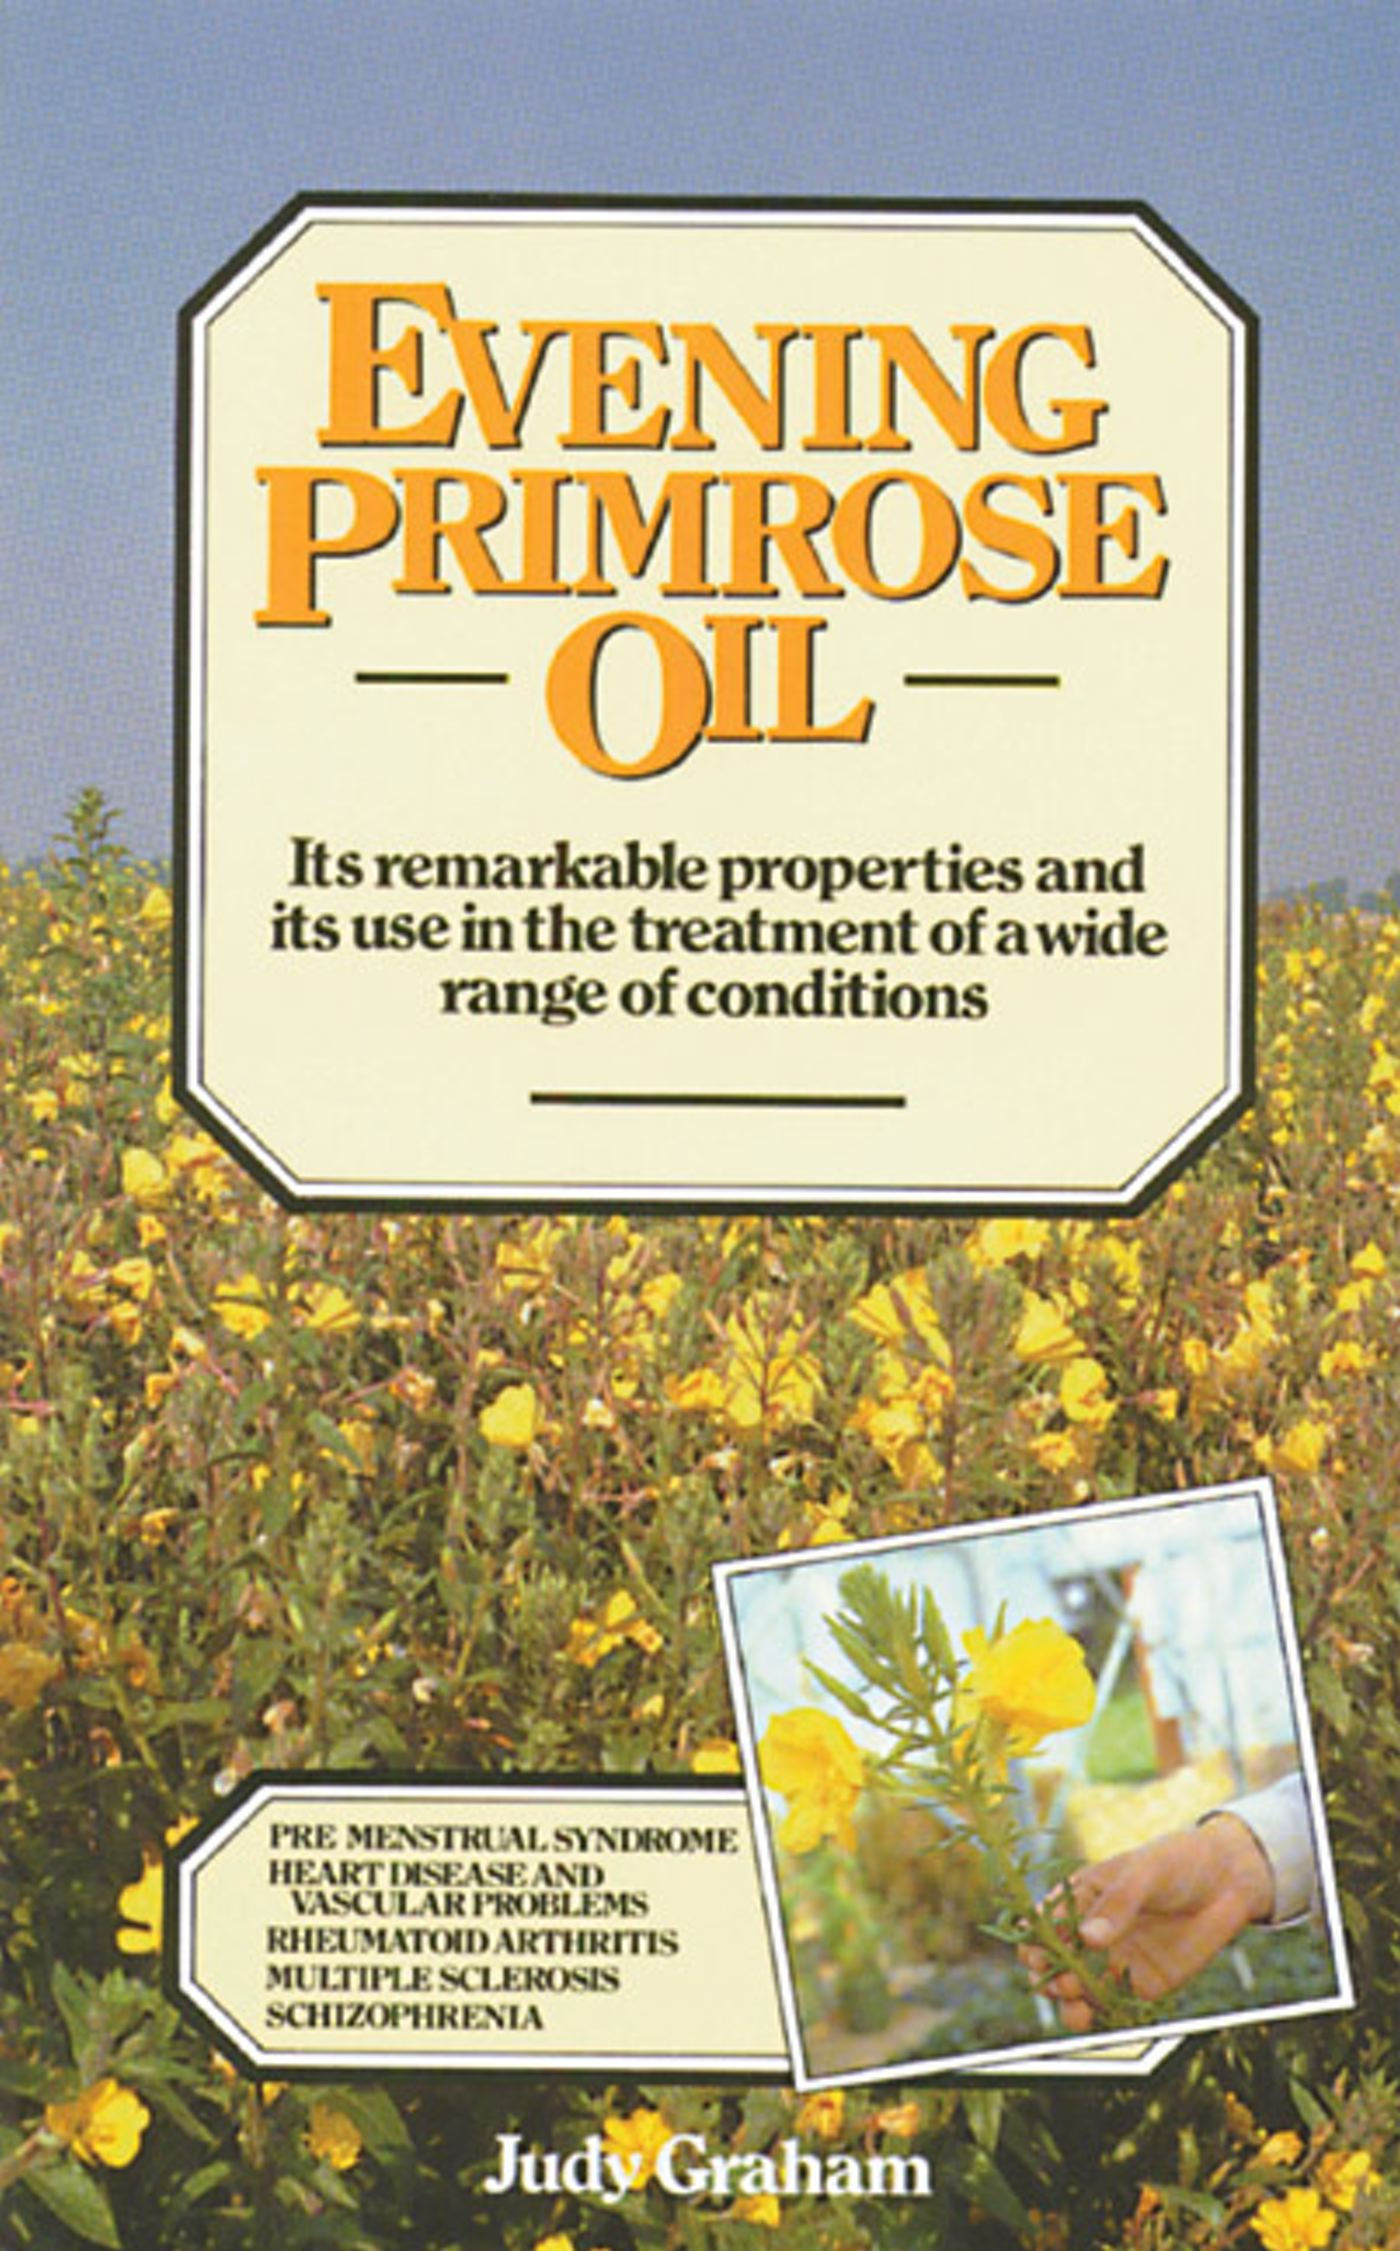 Evening primrose oil 9780892812882 hr